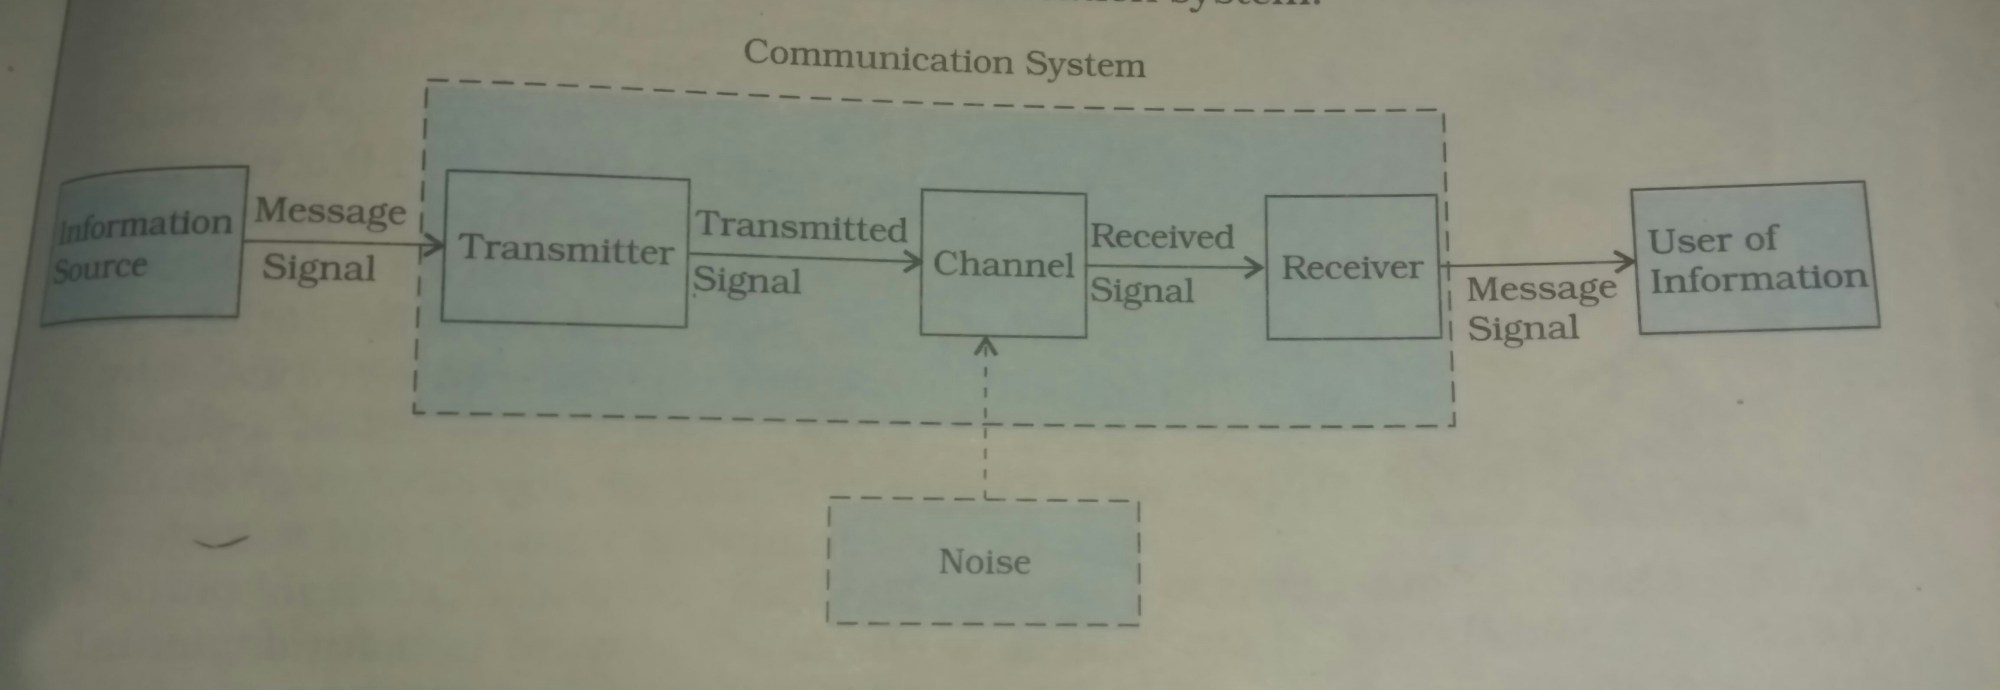 hight resolution of this is representing communication system